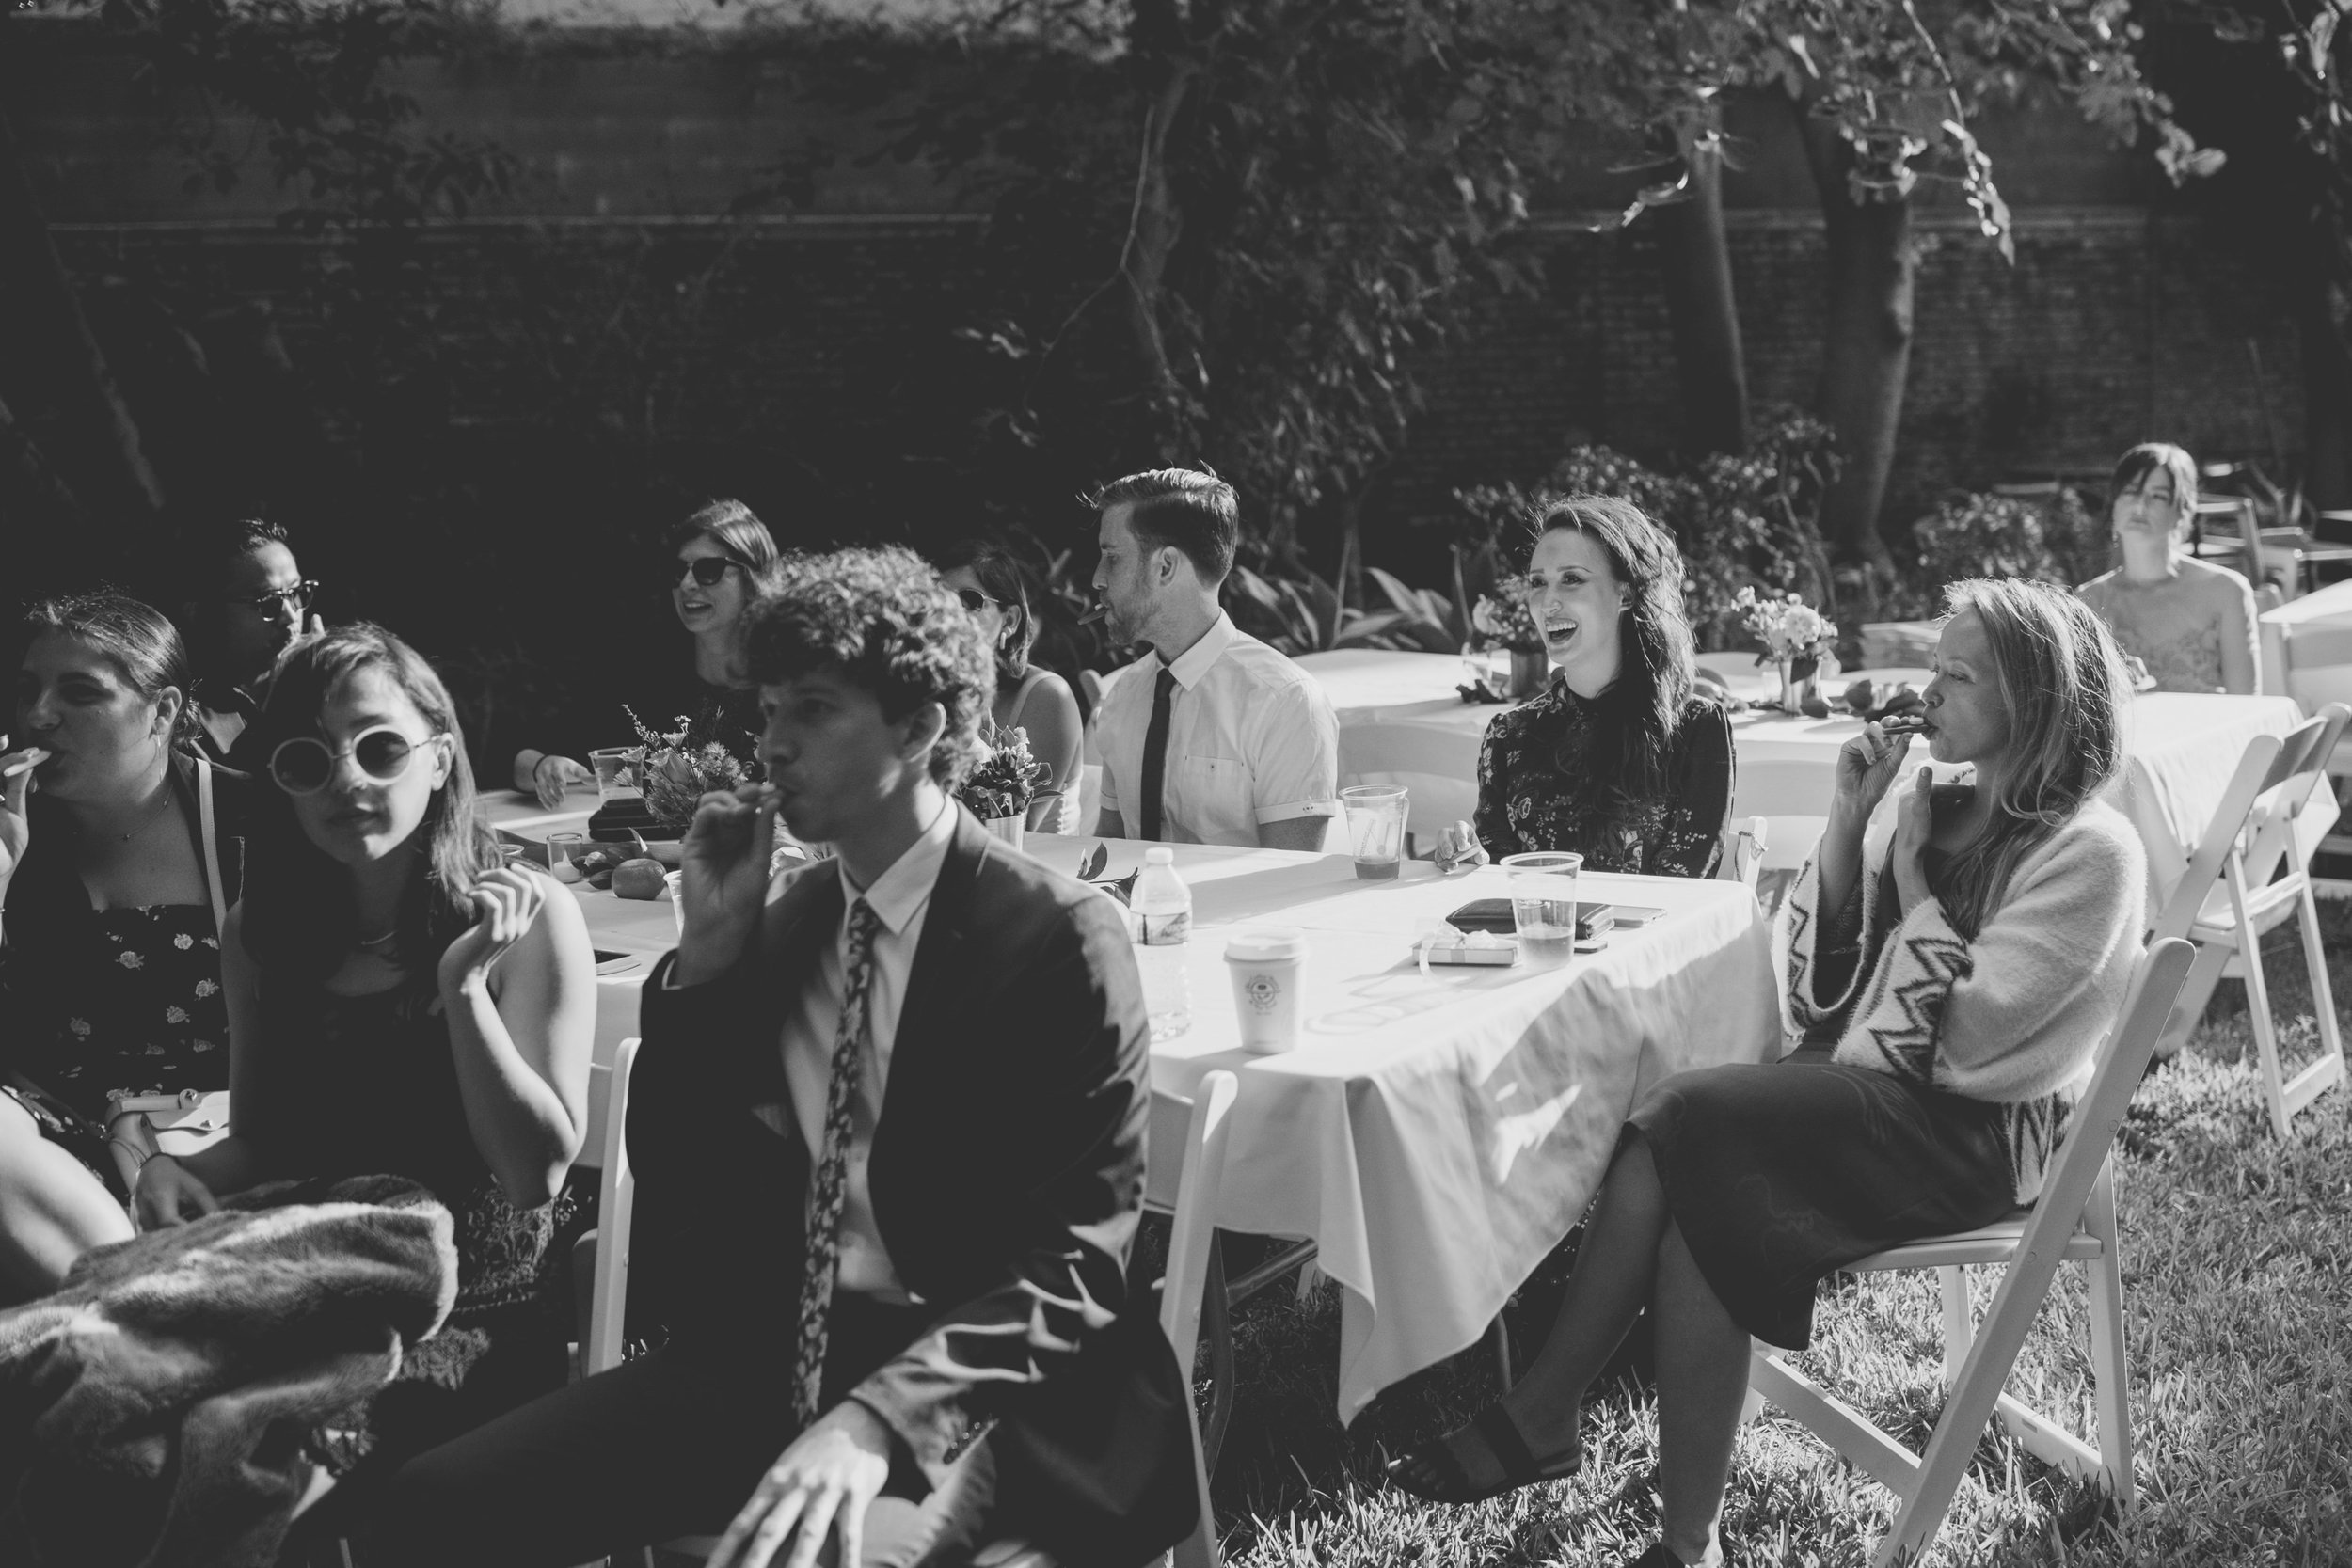 los_angeles_wedding_backyard_029.jpg